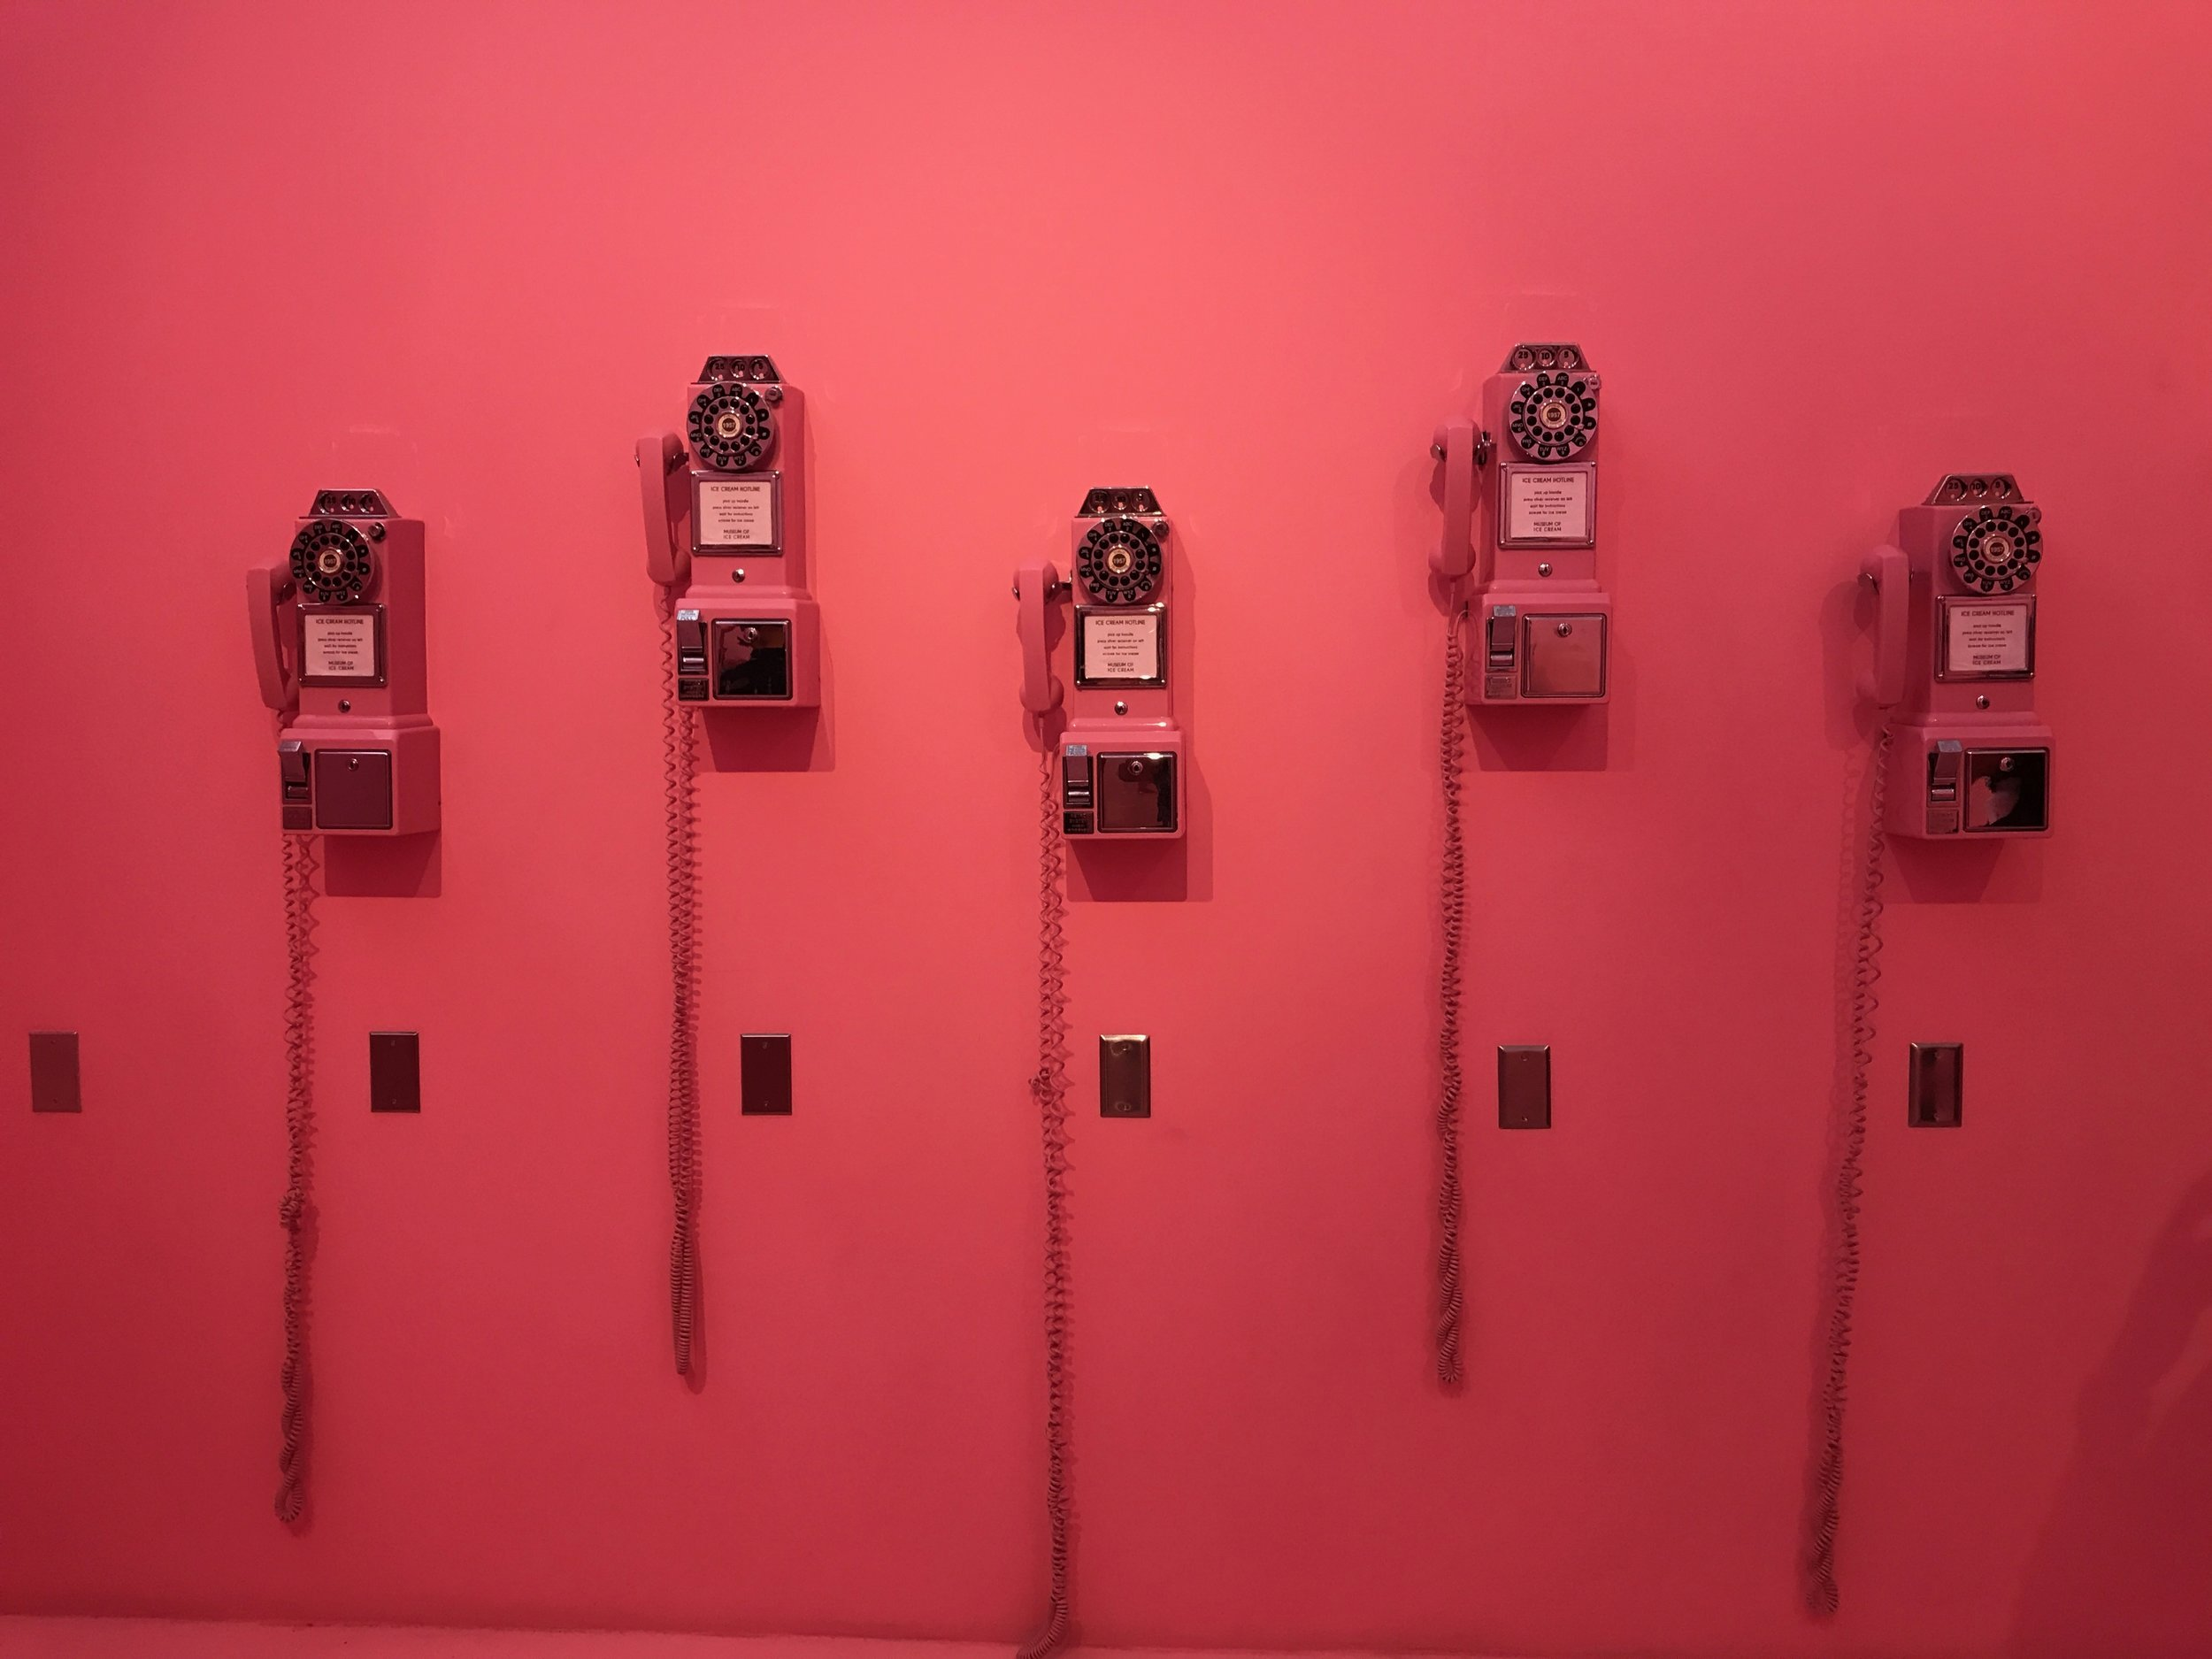 First room with pink walls and rotary phones